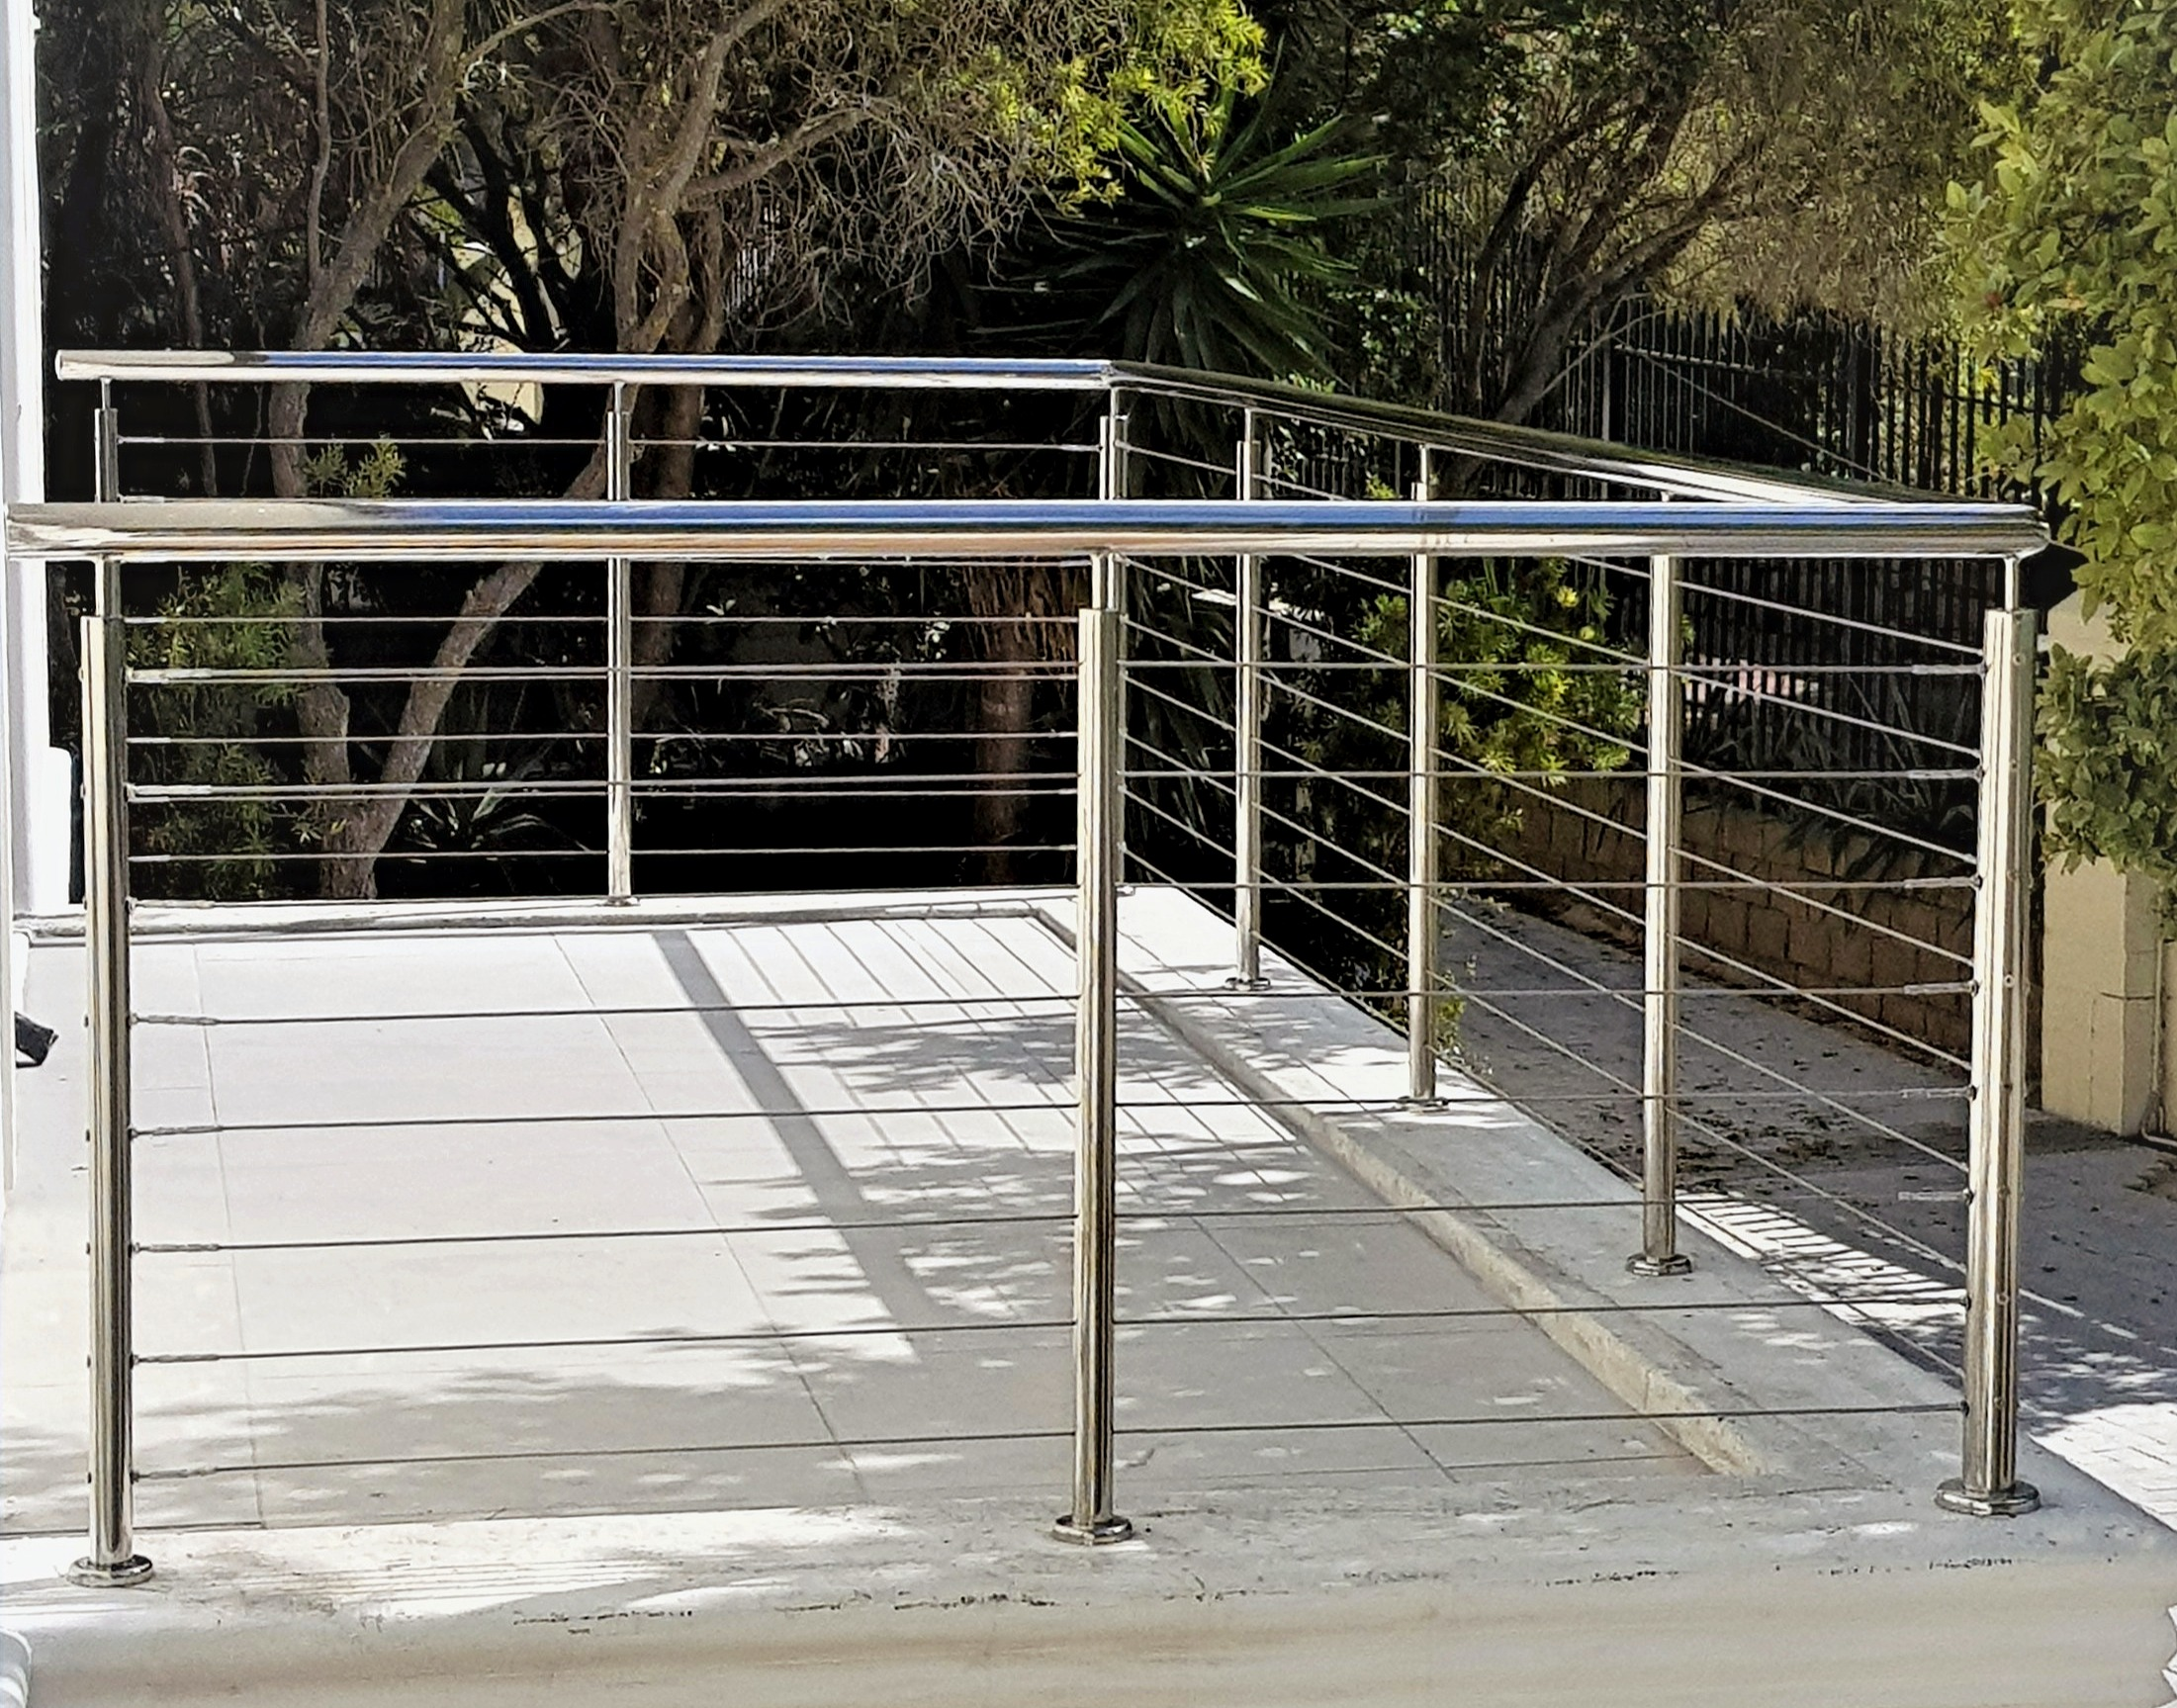 Balustrade stainless steel cable